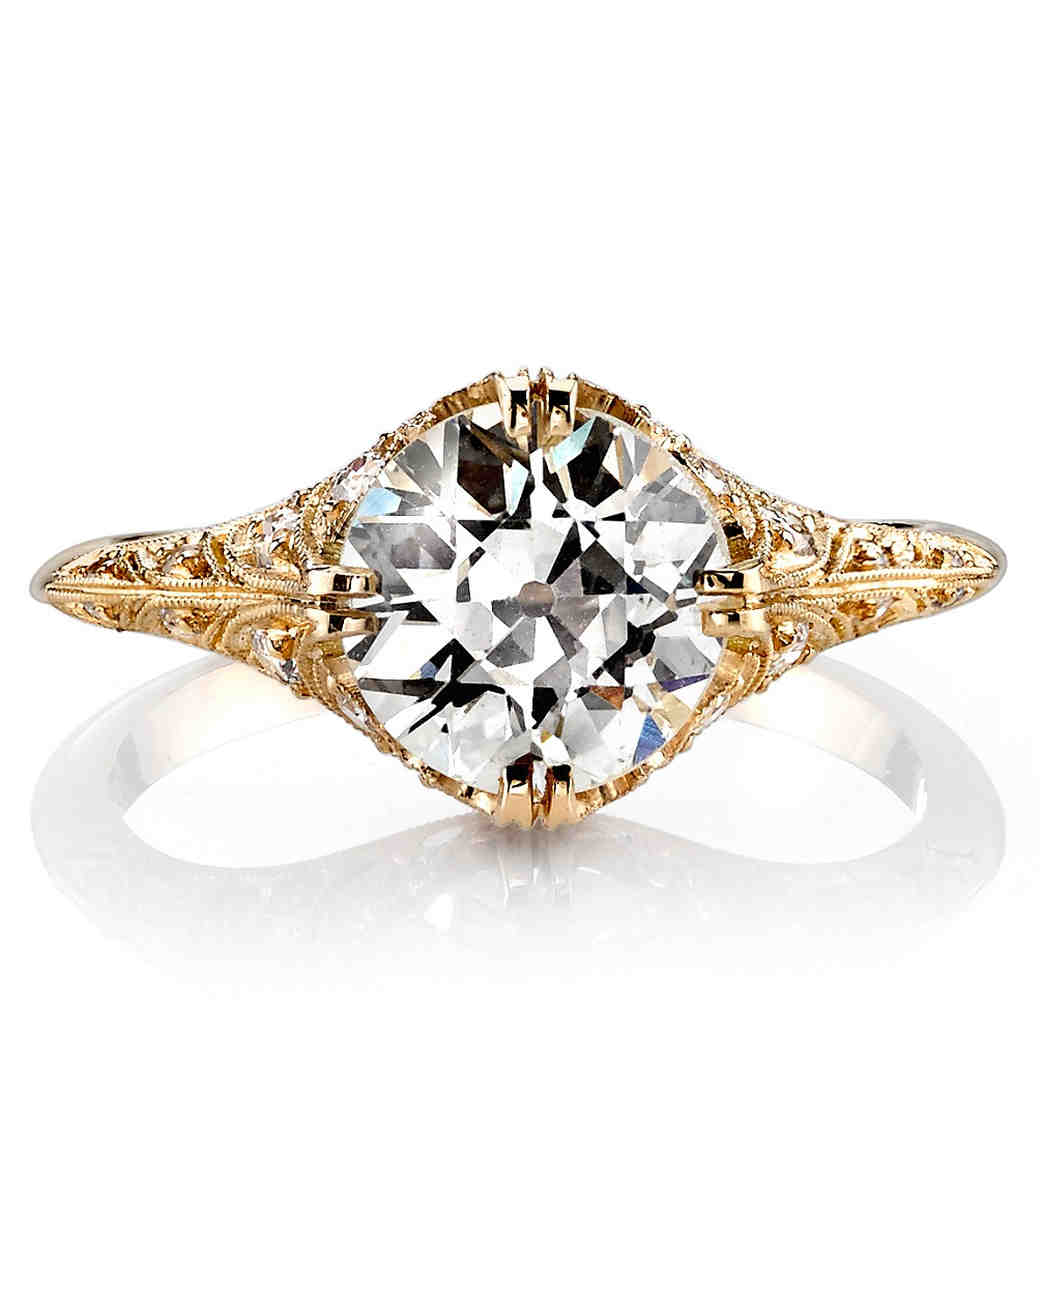 Single Stone Charlotte euro-cut yellow gold engagement ring